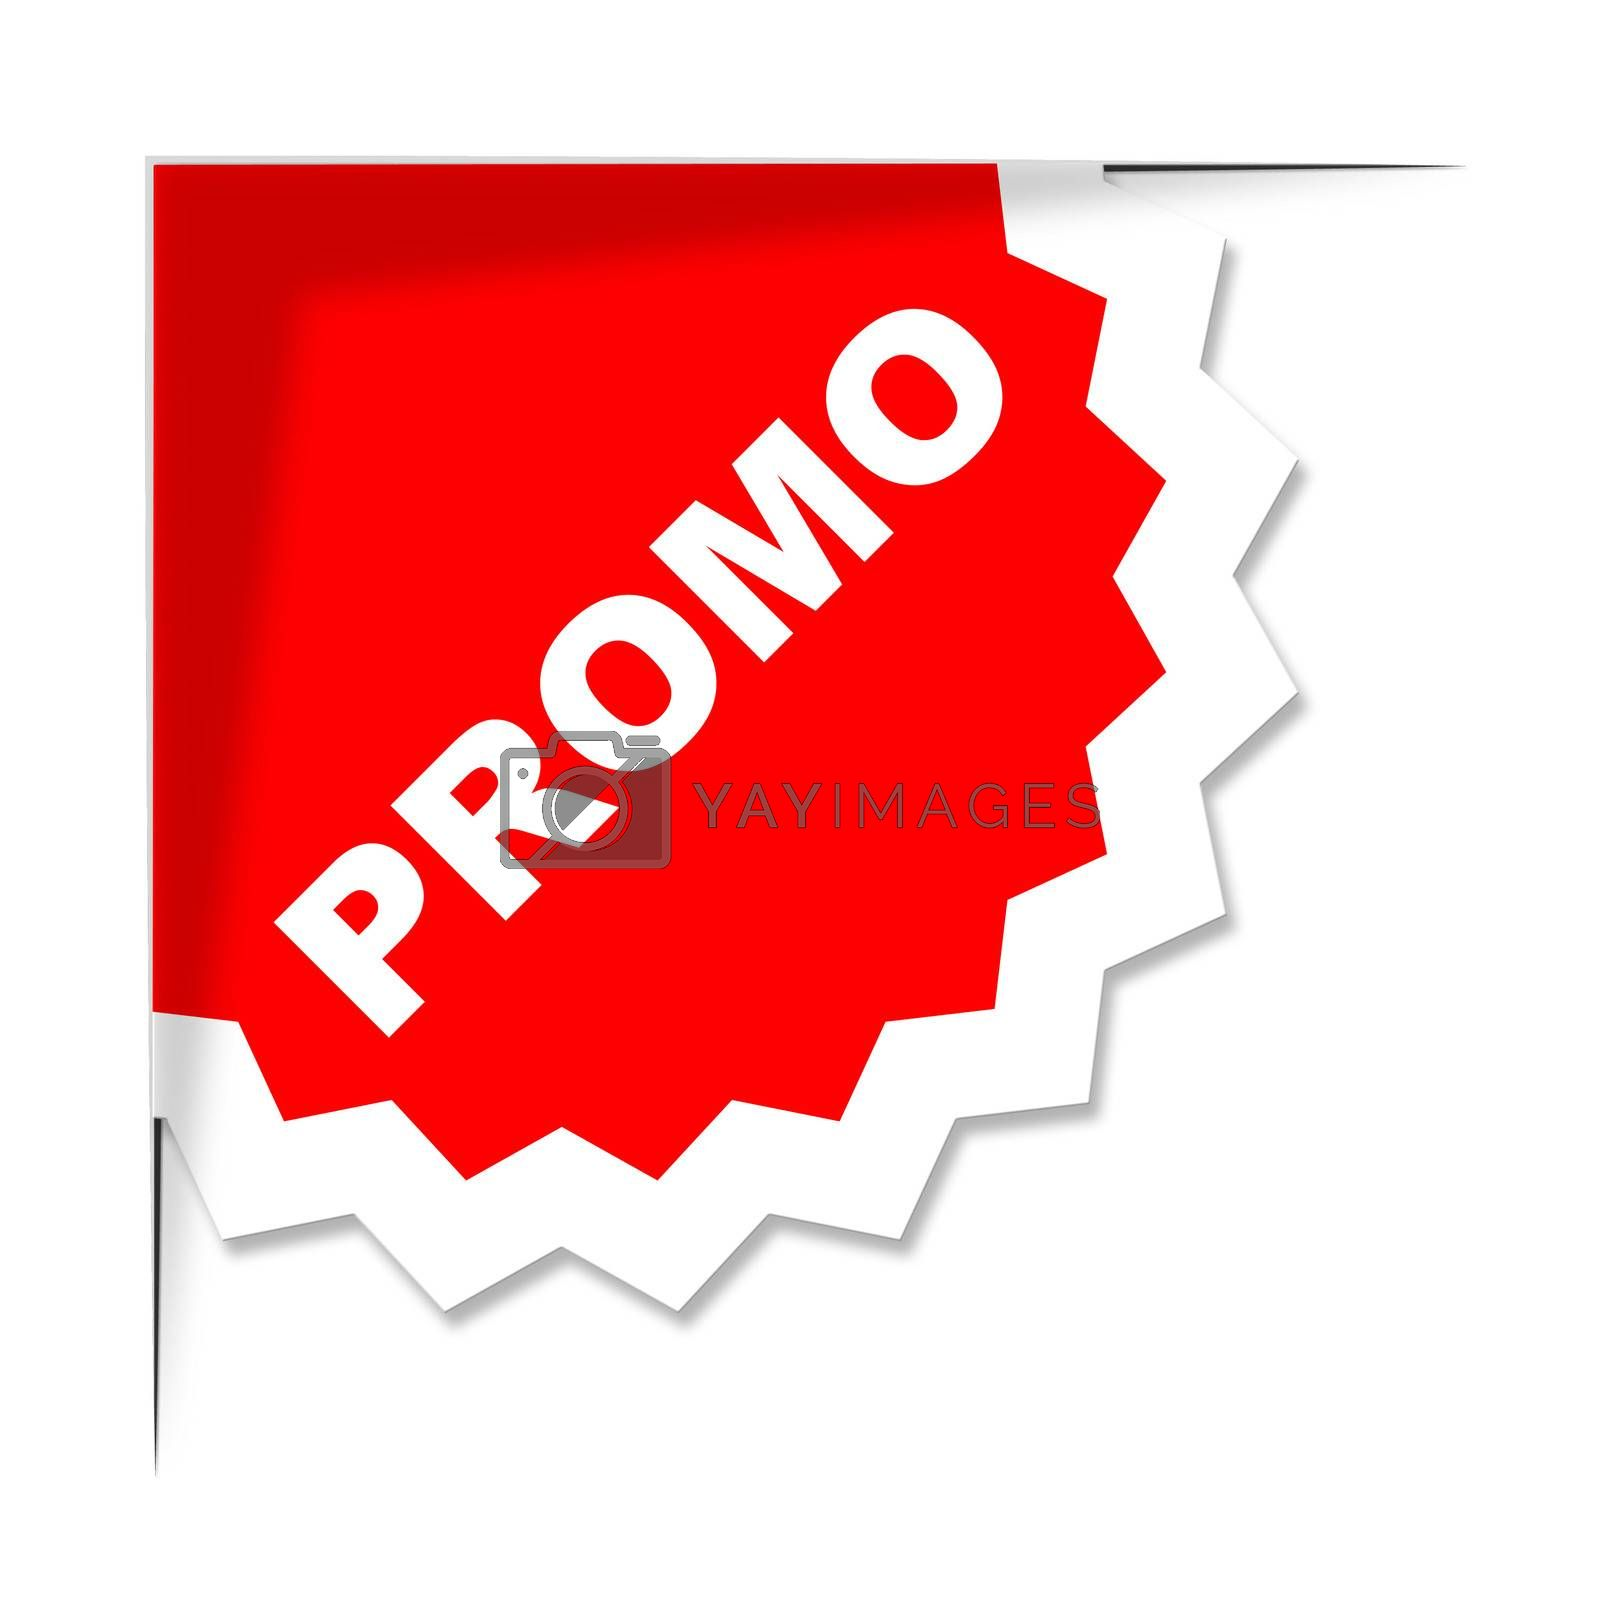 Promo Label Represents Merchandise Clearance And Discount by stuartmiles